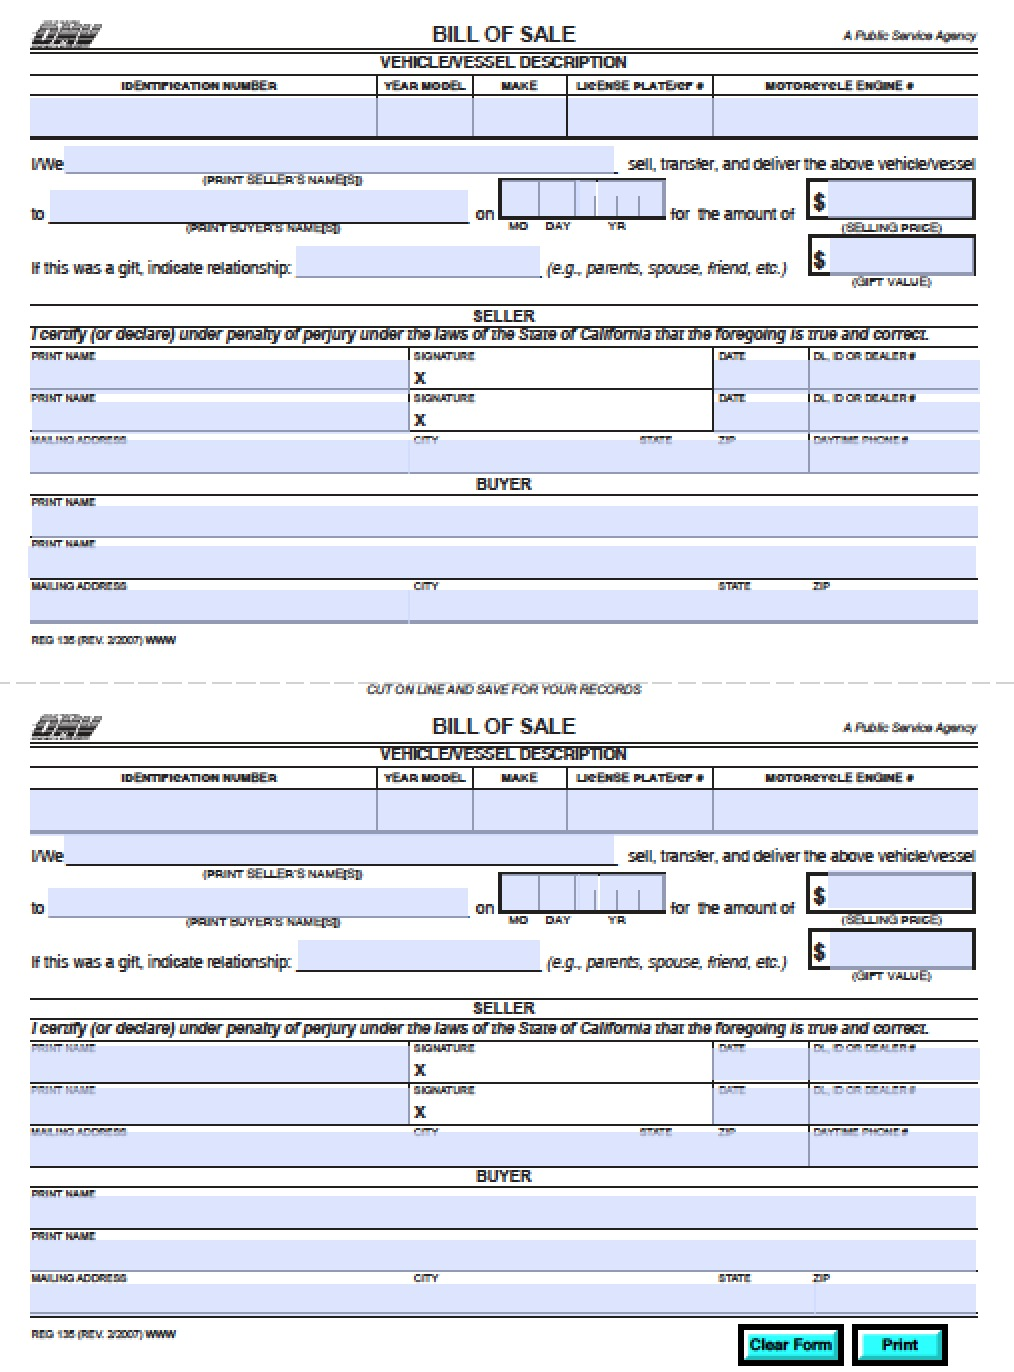 dmv bill of sale form print out koni polycode co